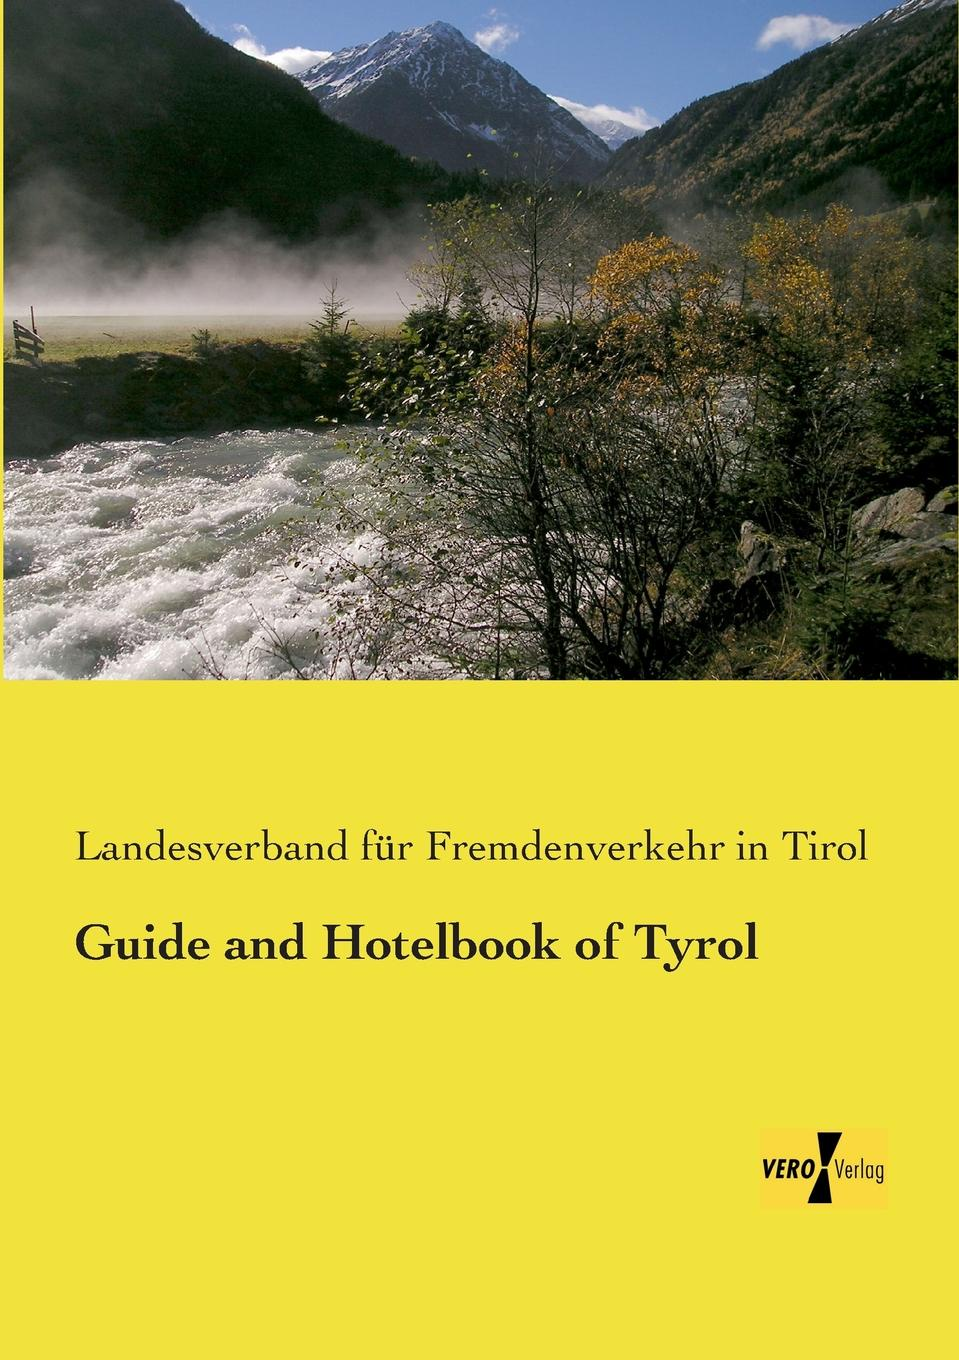 Guide and Hotelbook of Tyrol